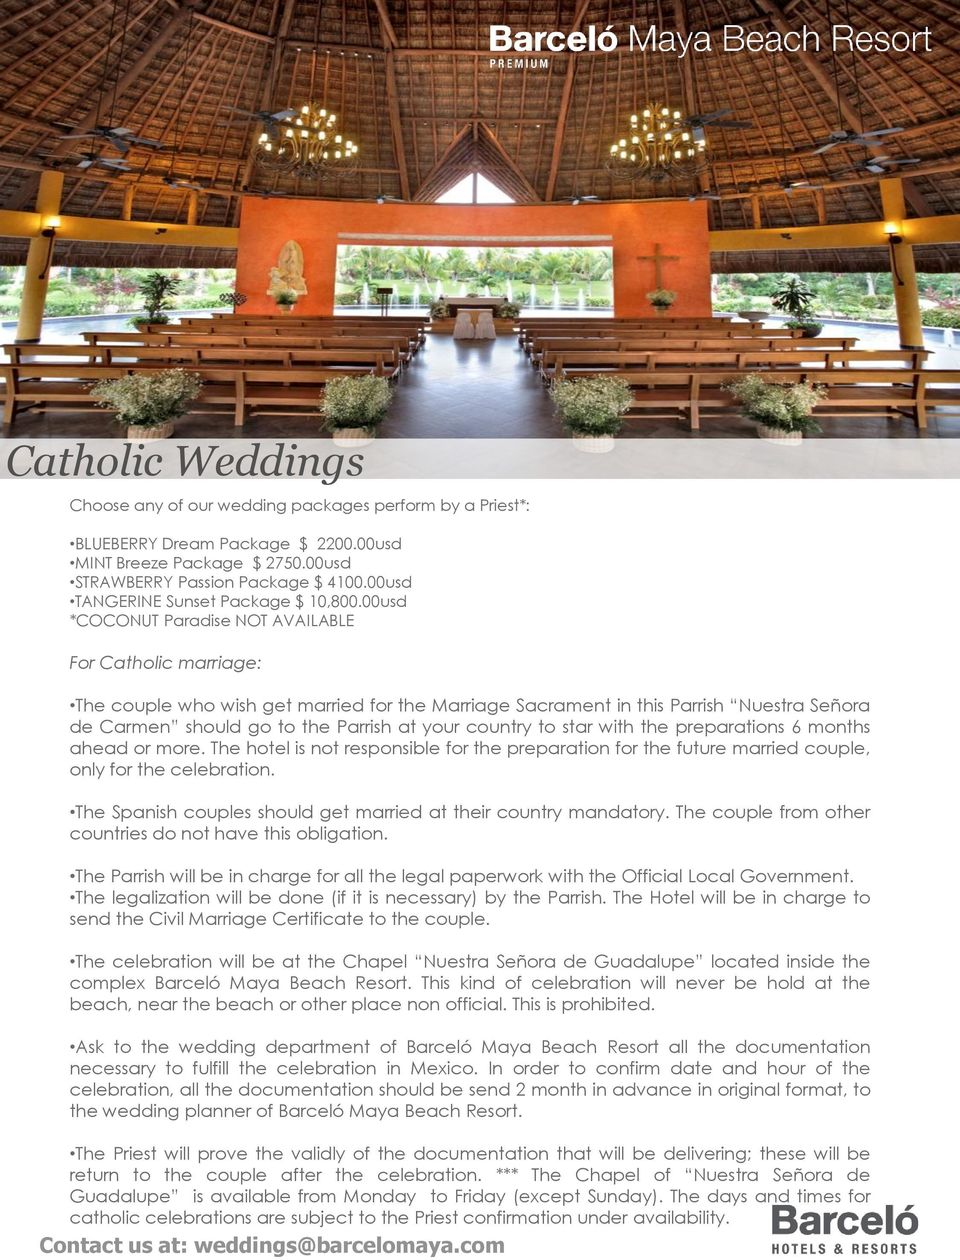 00usd *COCONUT Paradise NOT AVAILABLE For Catholic marriage: The couple who wish get married for the Marriage Sacrament in this Parrish Nuestra Señora de Carmen should go to the Parrish at your